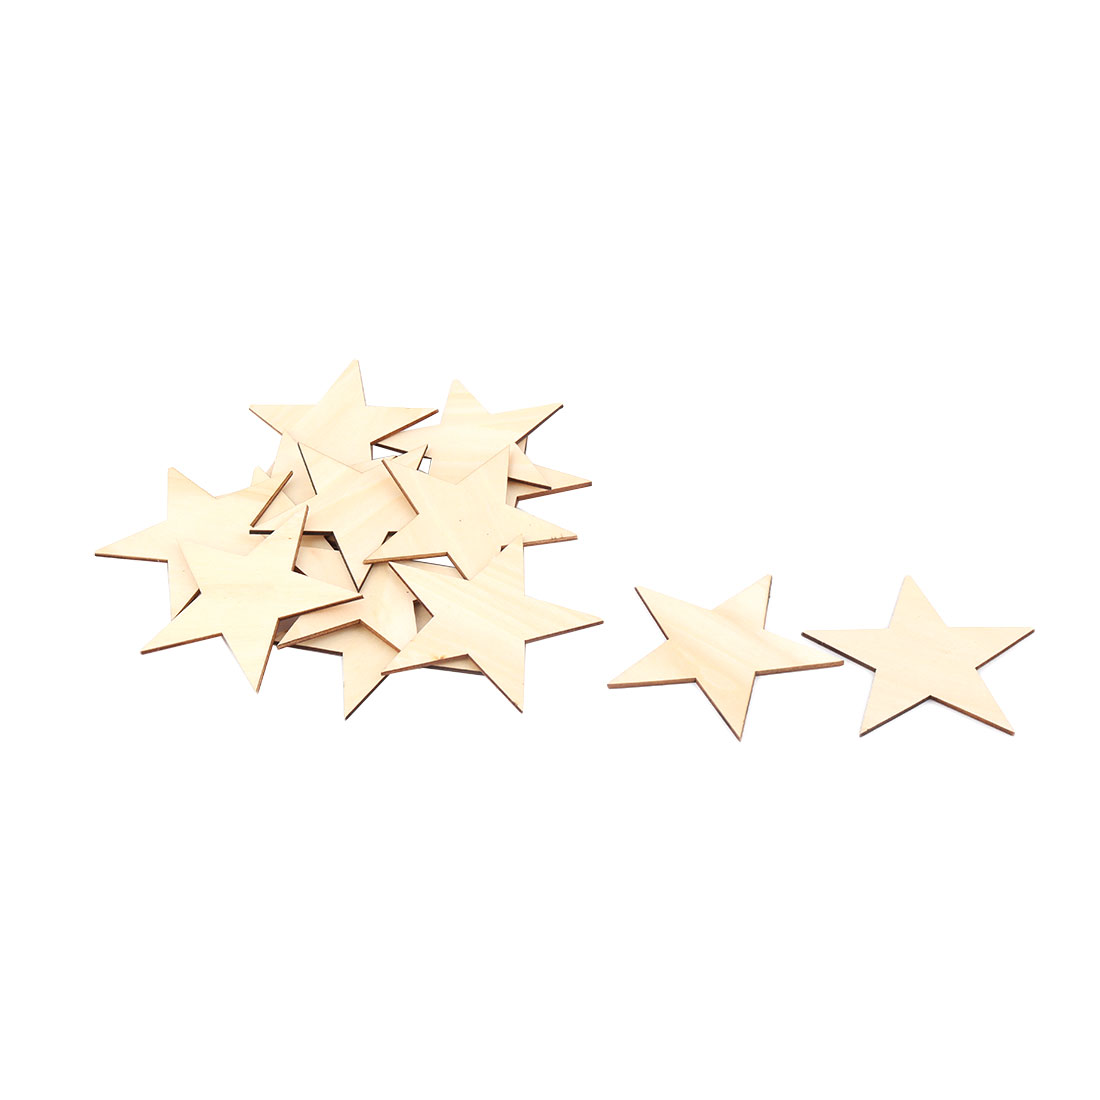 Wooden Star Shaped DIY Craft Christmas Tree Accessories Ornaments Beige 100 x 100mm 15pcs